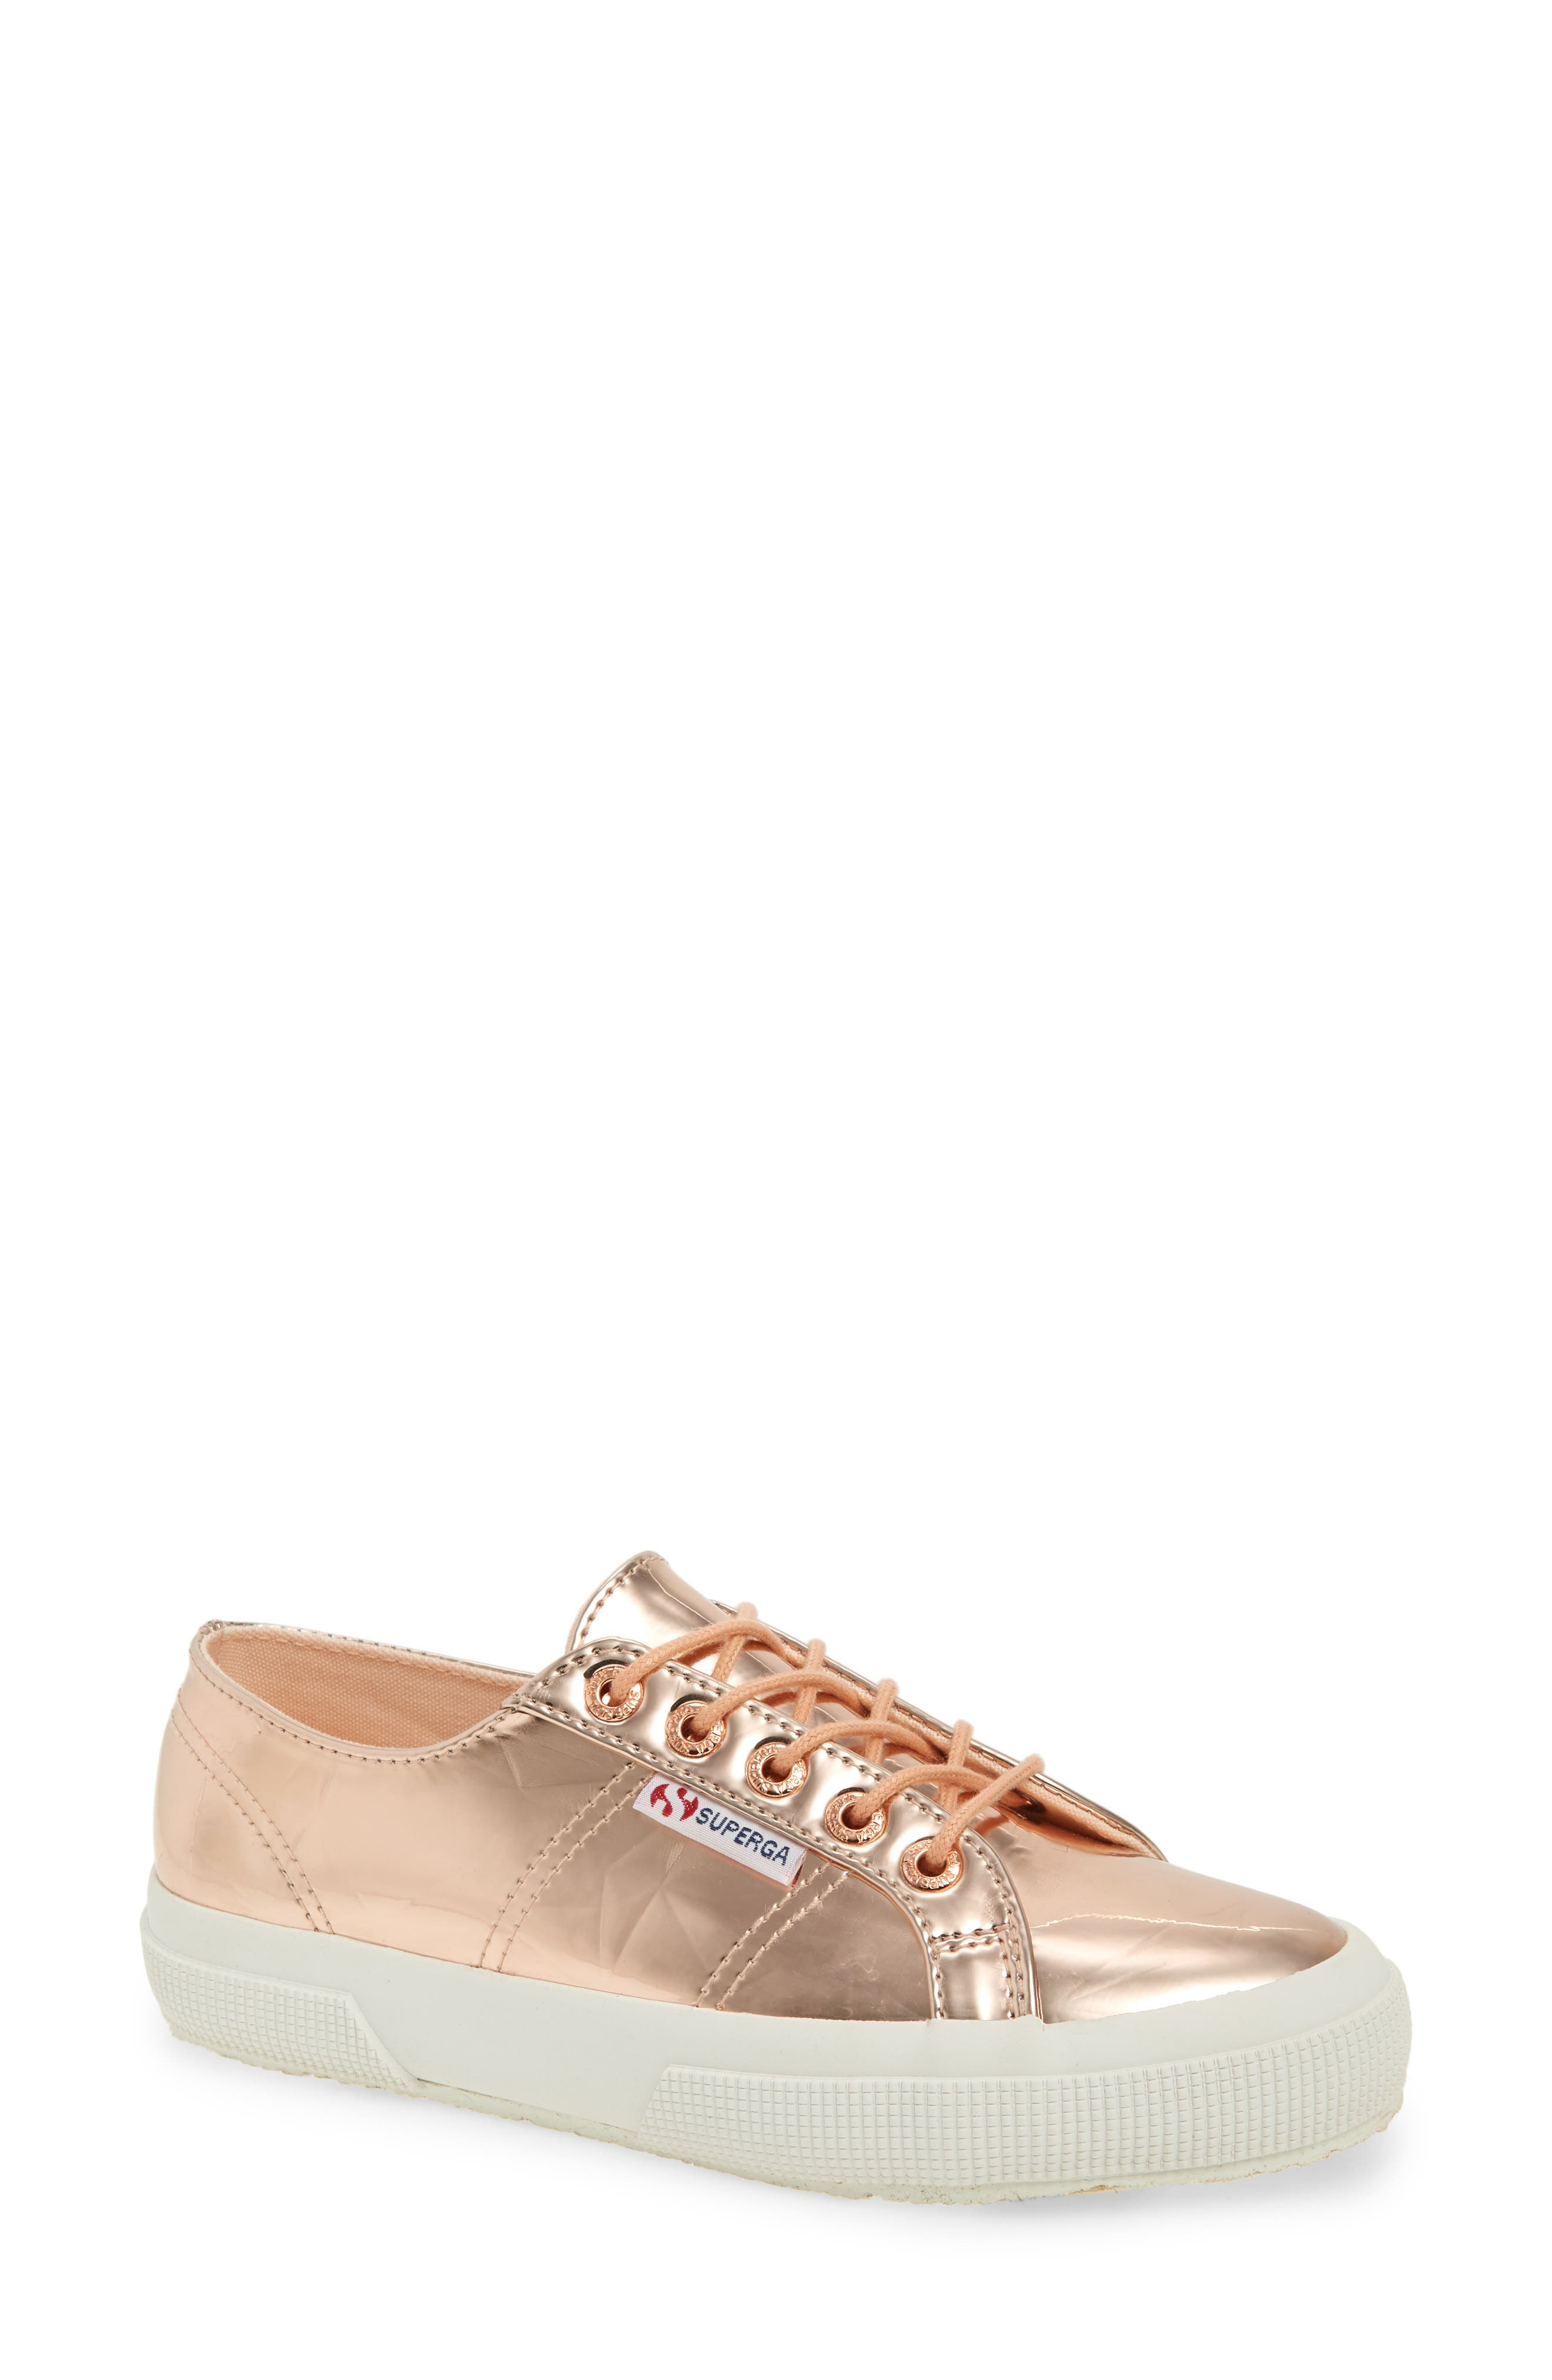 2750 Synleadiamondmirror Sneaker,                             Main thumbnail 1, color,                             Rose Gold